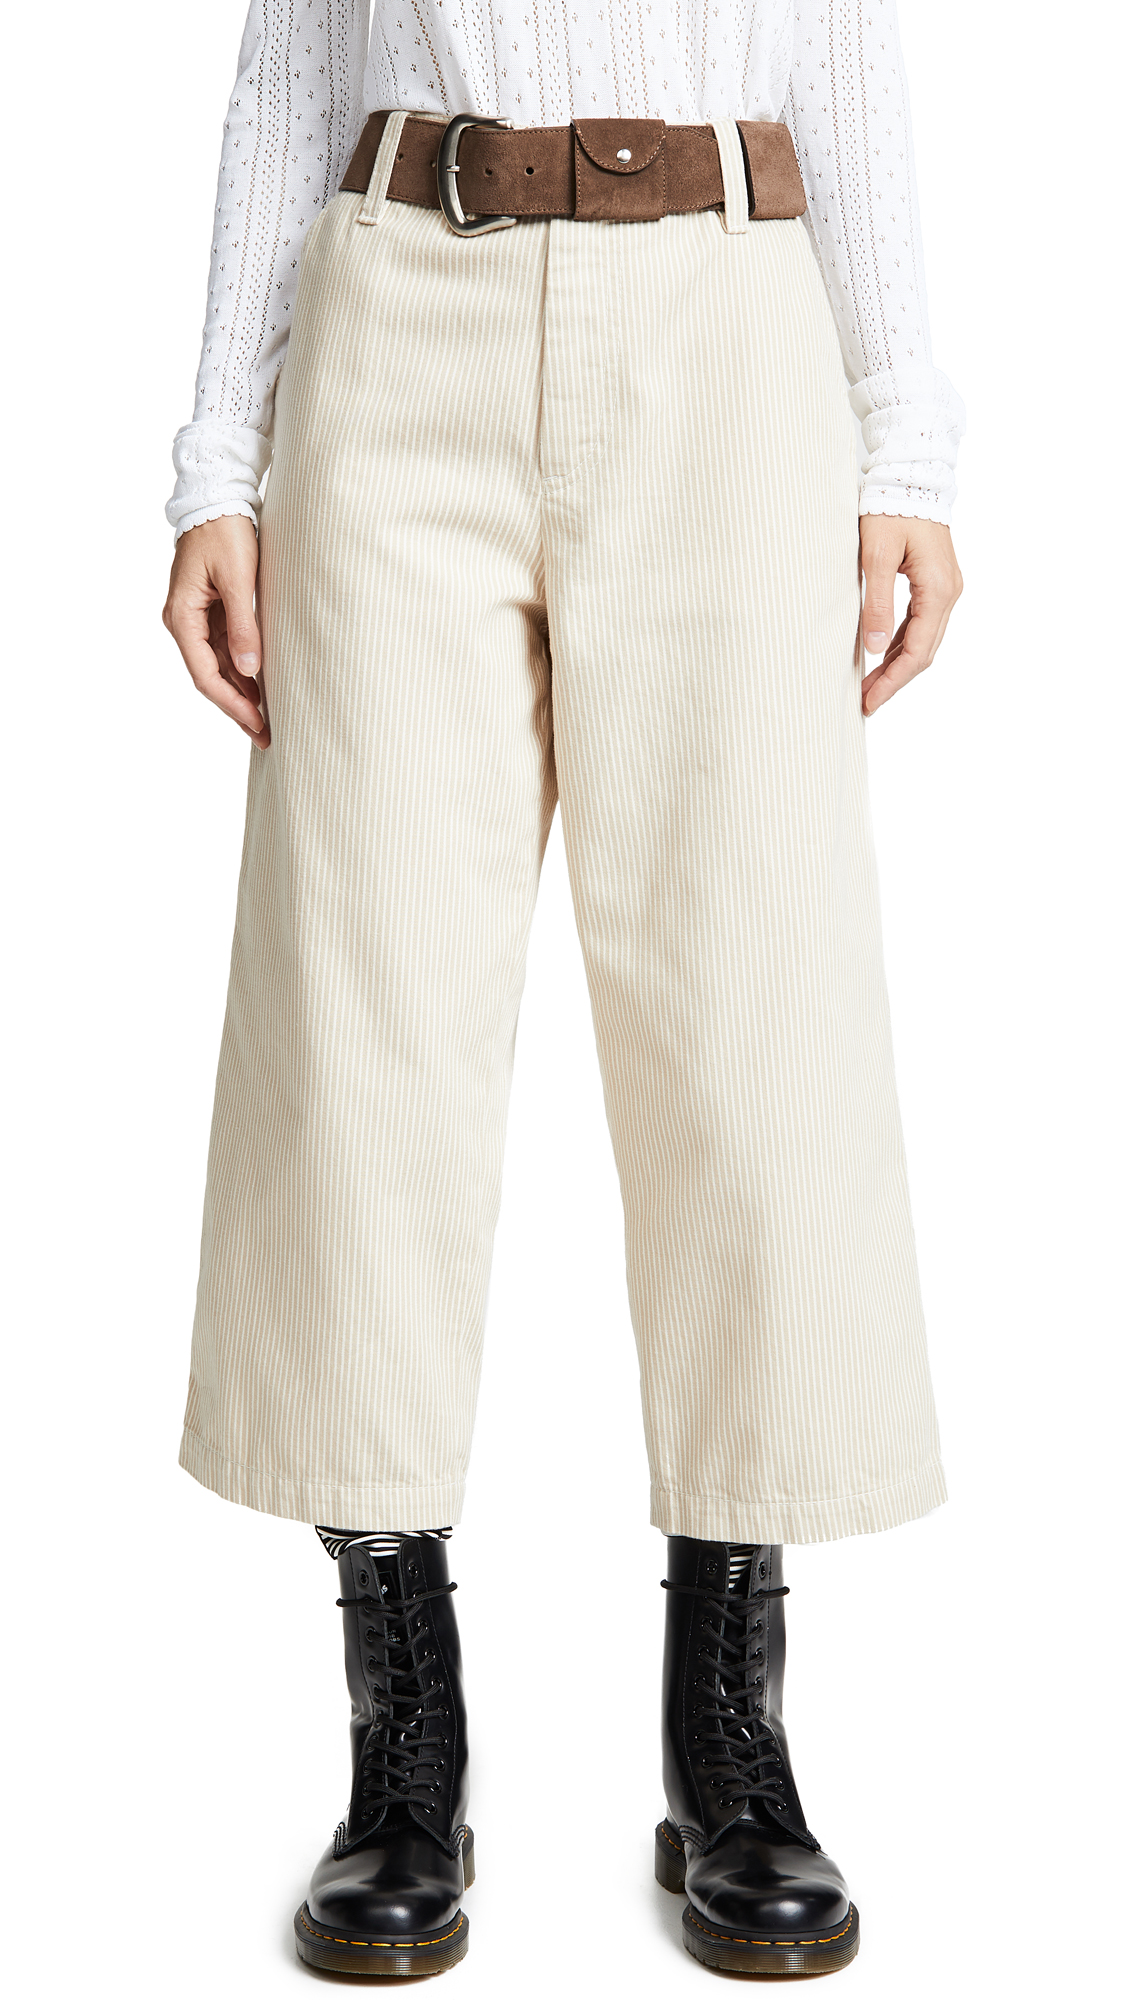 Marc Jacobs Redux Grunge Cropped Pants - Beige/Ivory